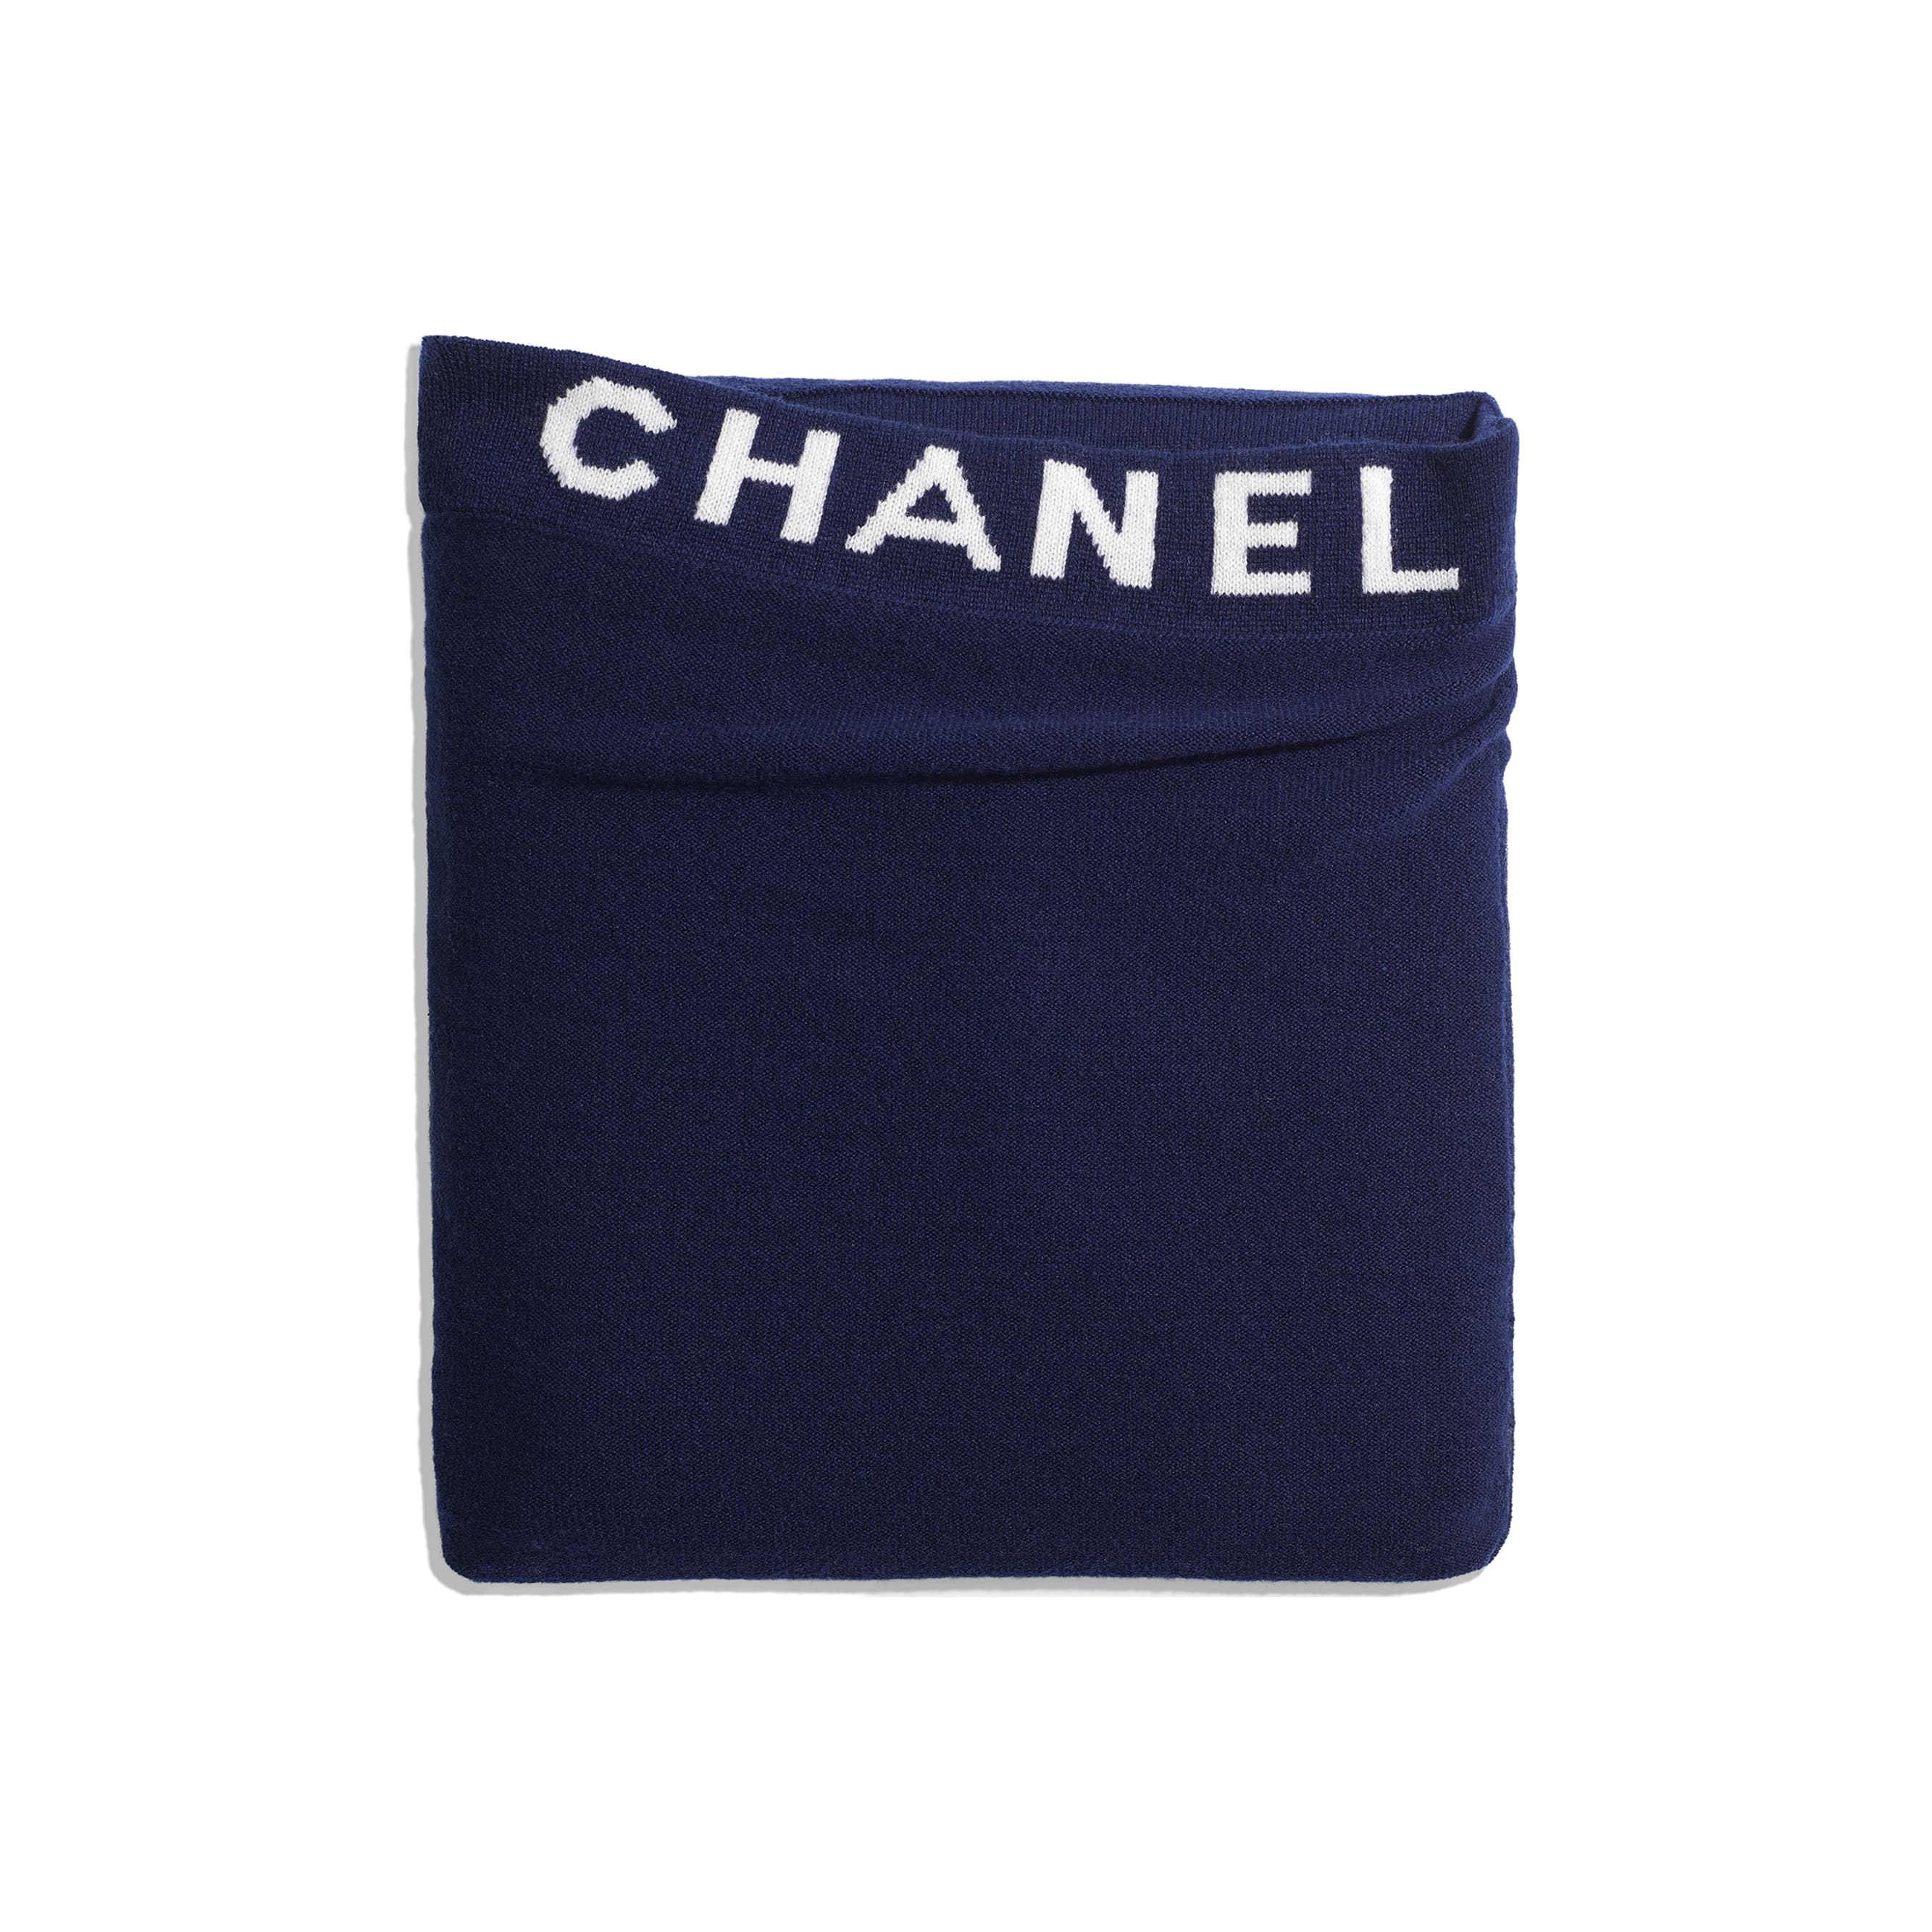 Travelling Blanket - Navy Blue - Cashmere - Alternative view - see standard sized version